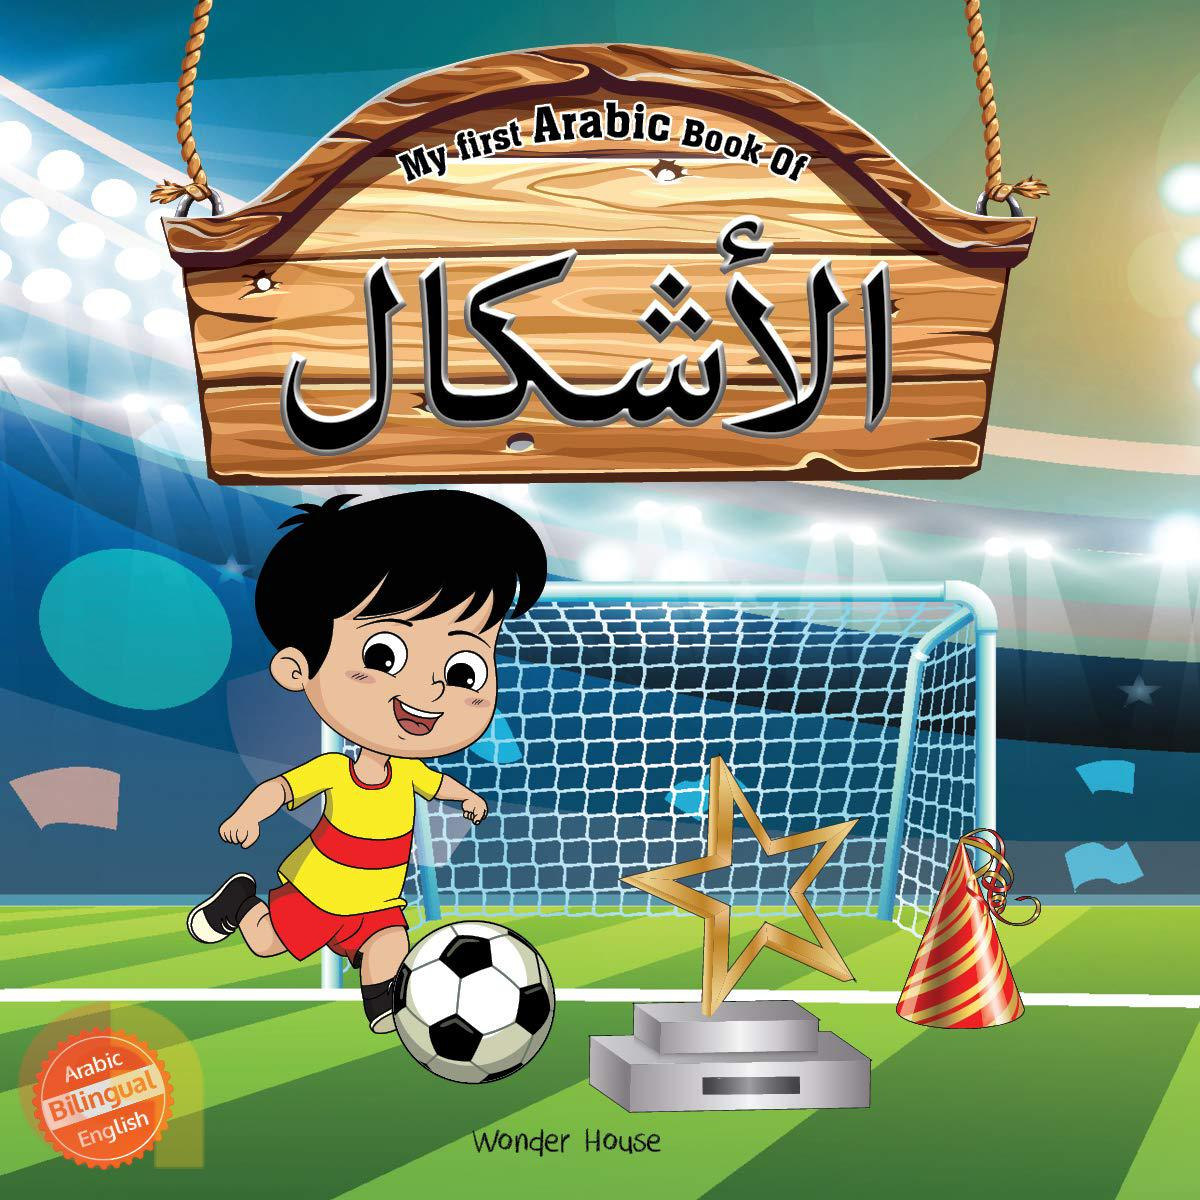 My first Arabic book of Shapes